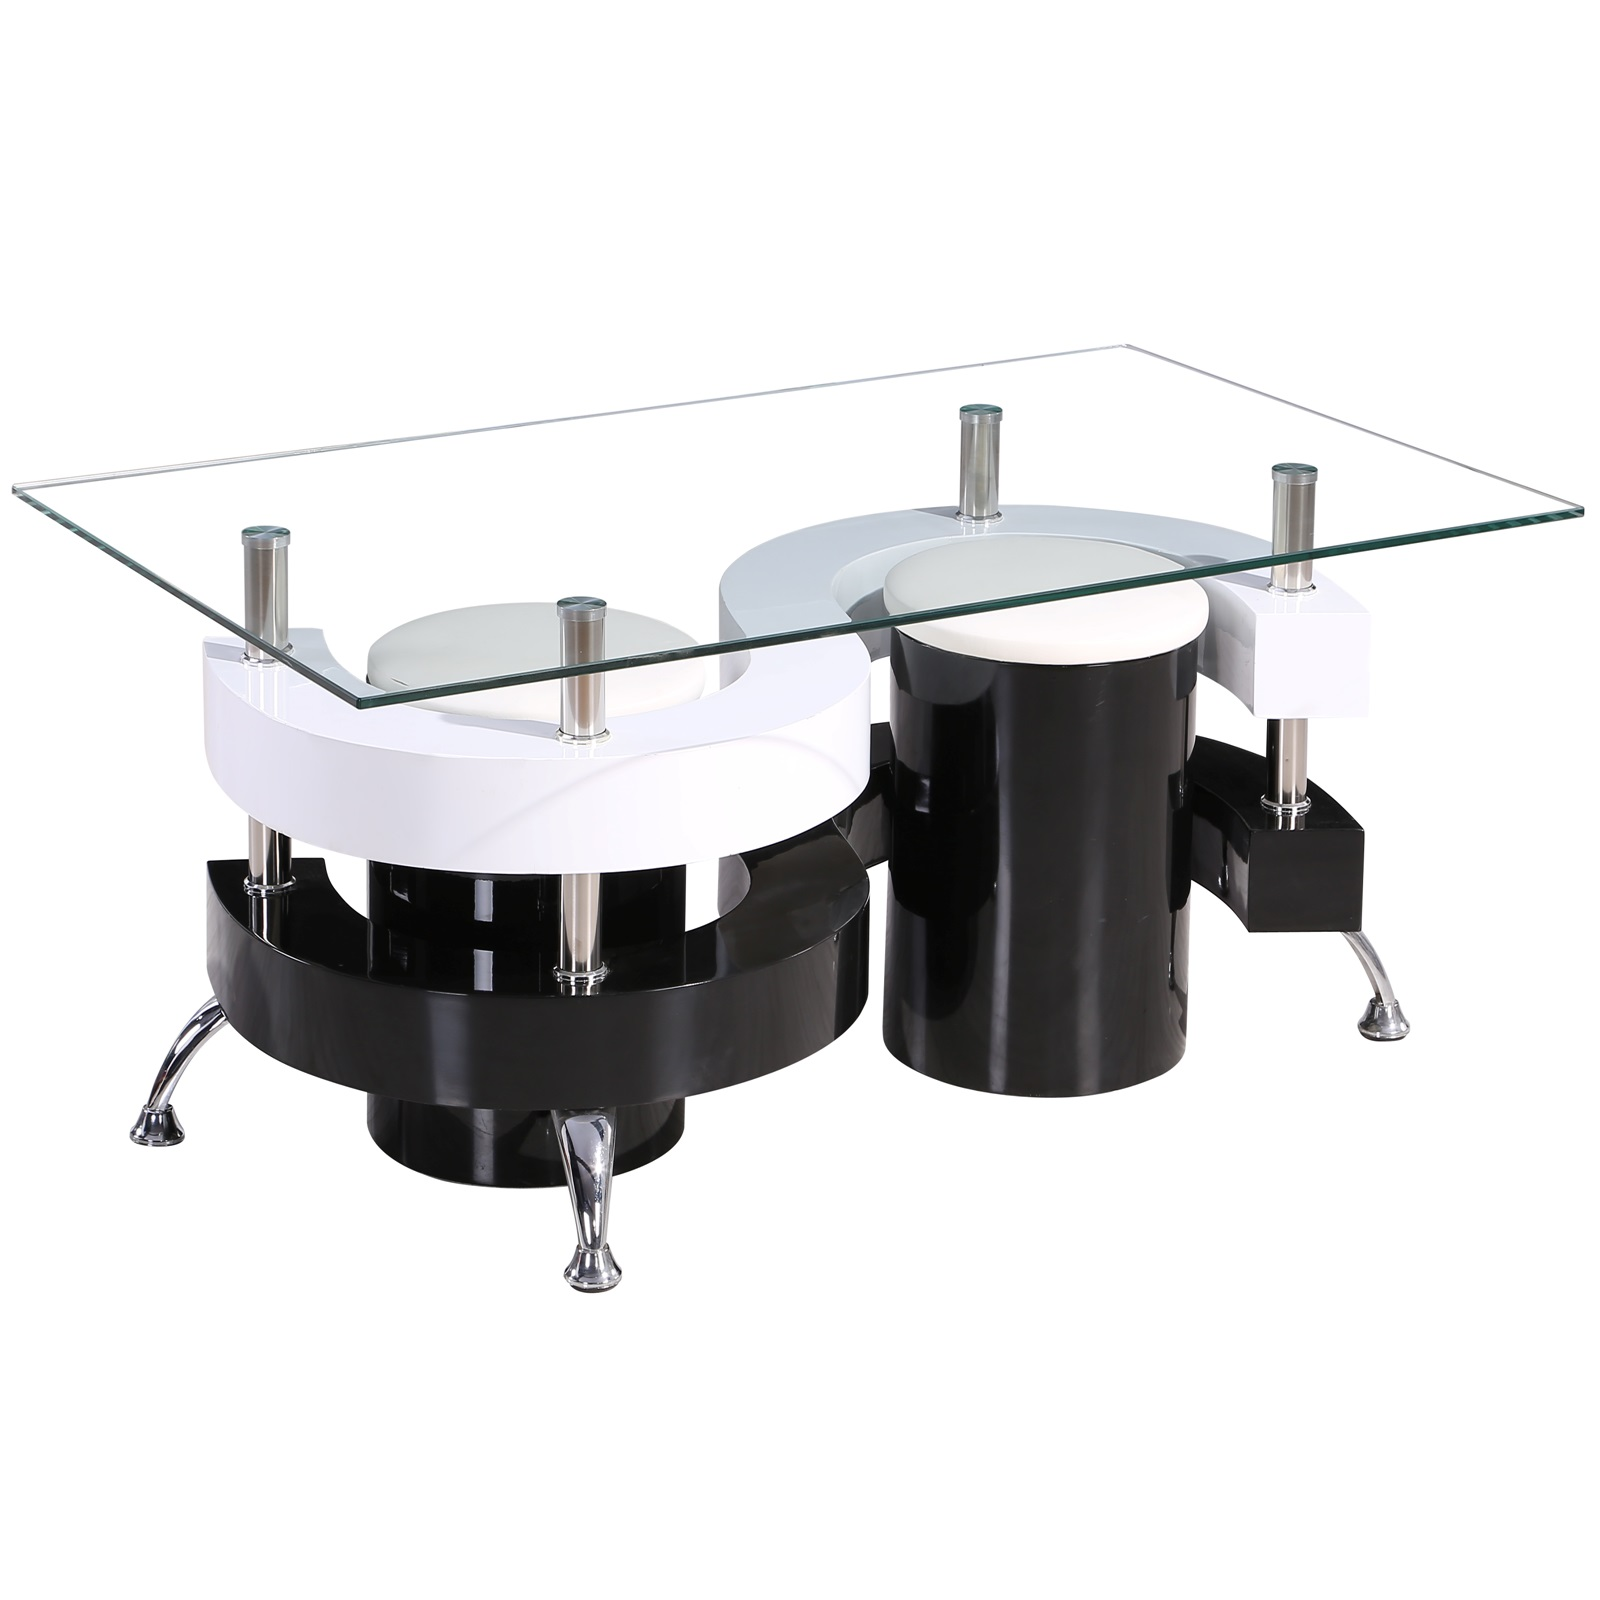 8a6d9cdf0cea Product Details. Gr8 Home S Shape Rectangular Glass Dining Coffee Table And  2 Stools Chairs Set